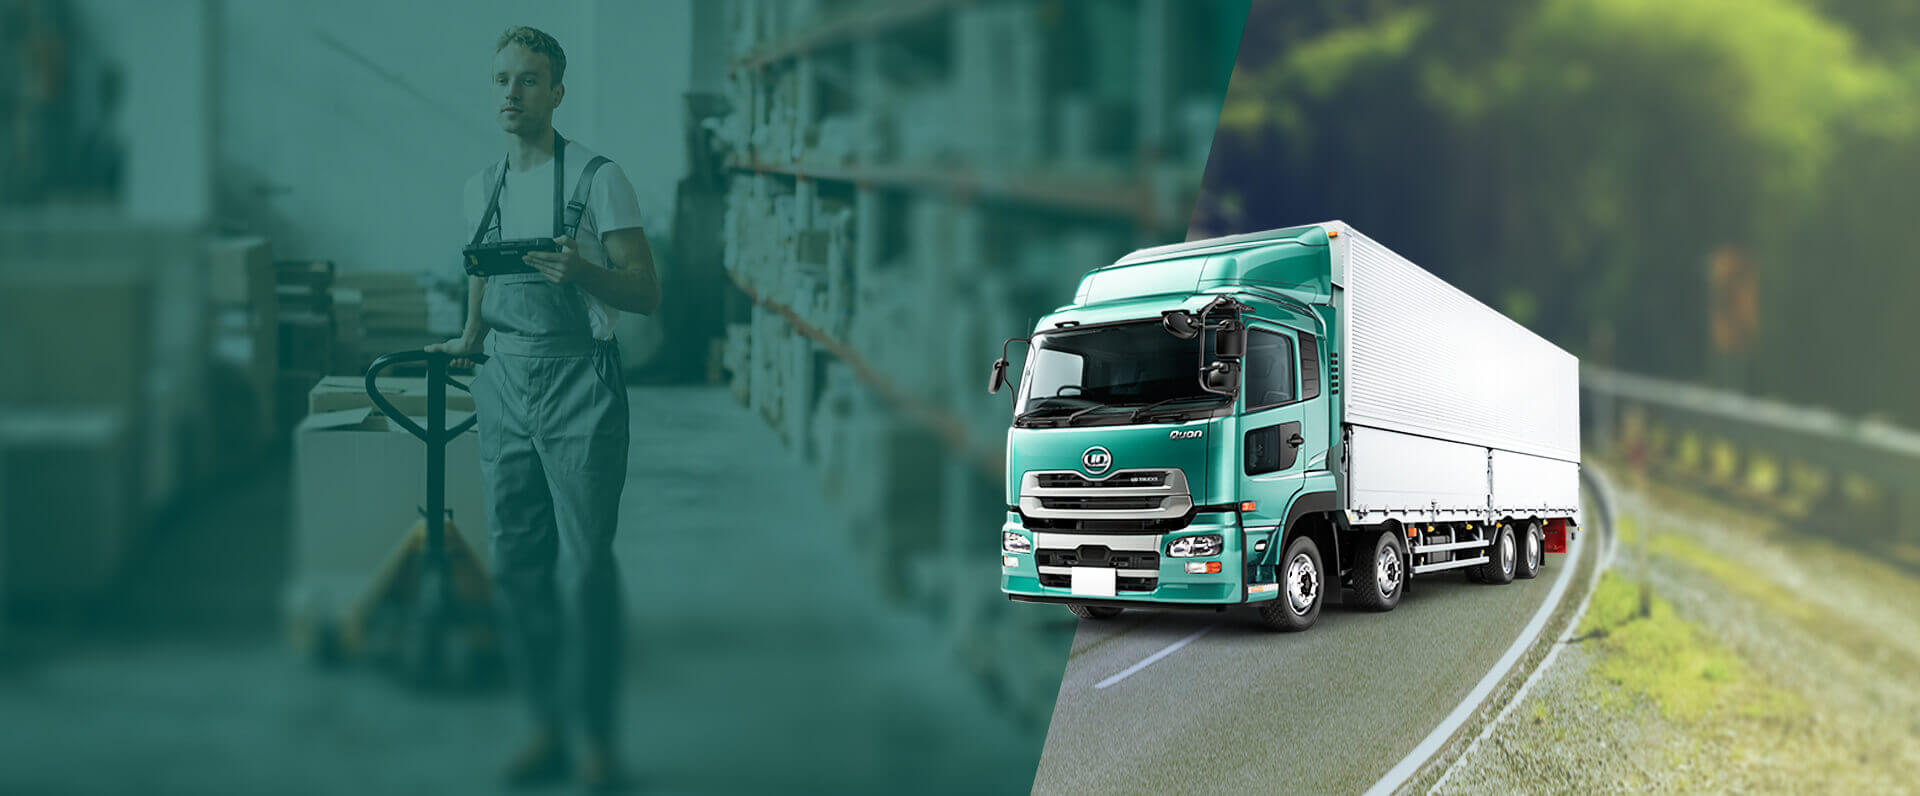 Custom Mobility Solutions for Transportation and Logistics Industry